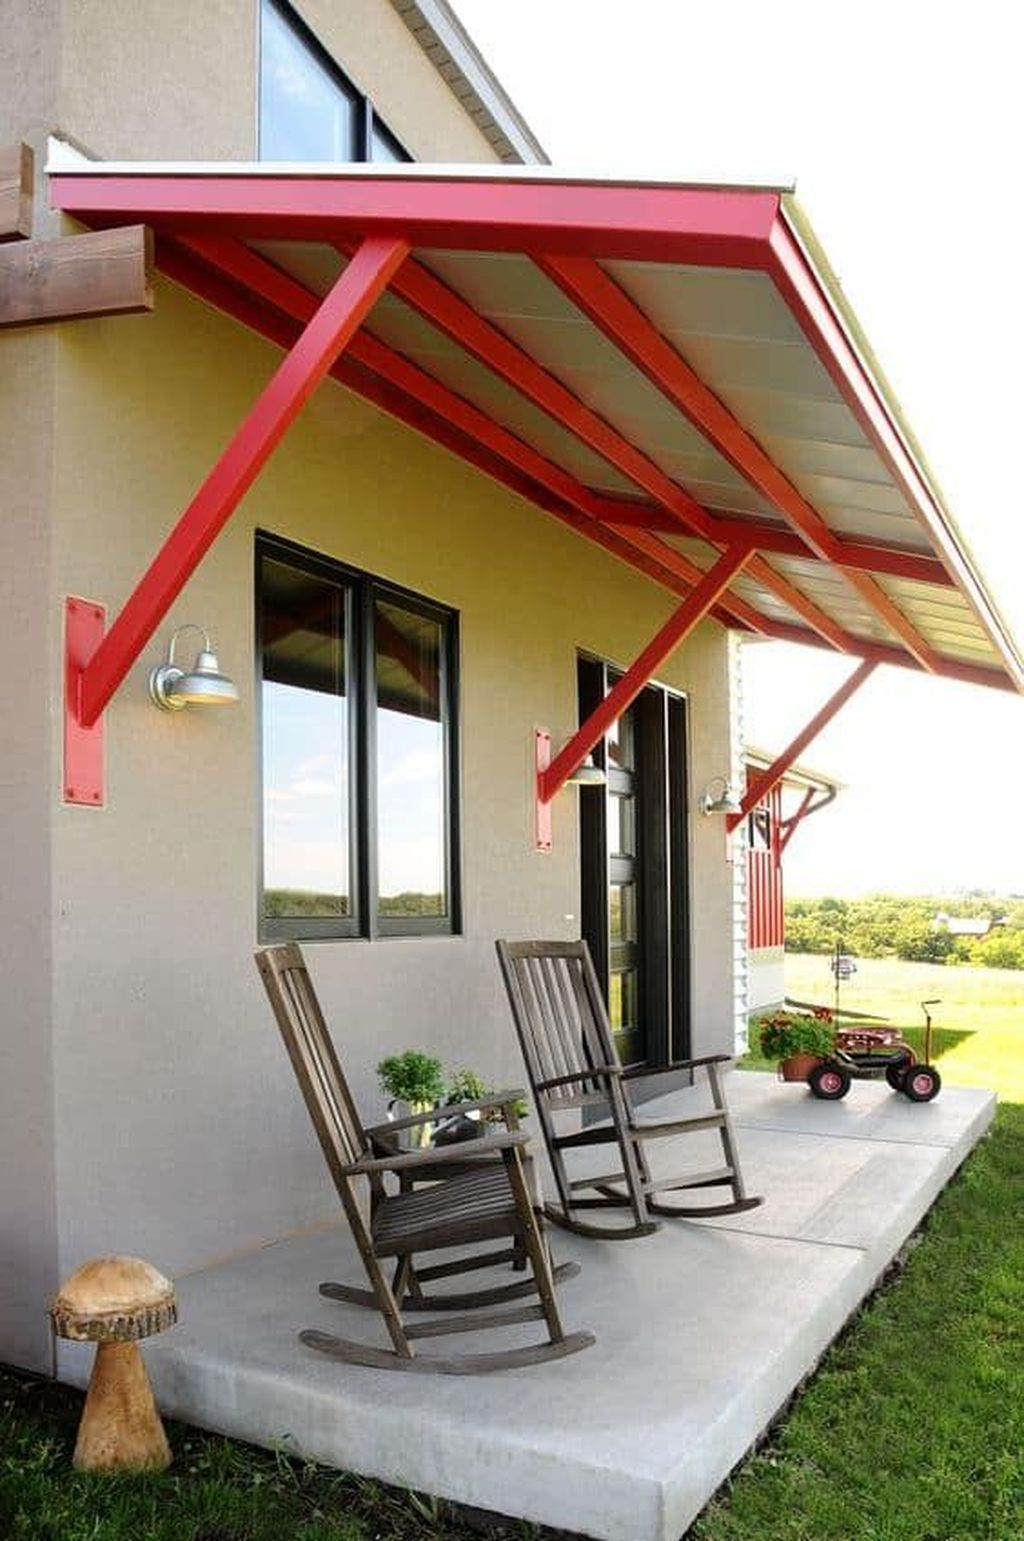 30 Amazing Porch Roof Design Ideas In 2020 Front Porch Decorating Farmhouse Front Porches Porch Design